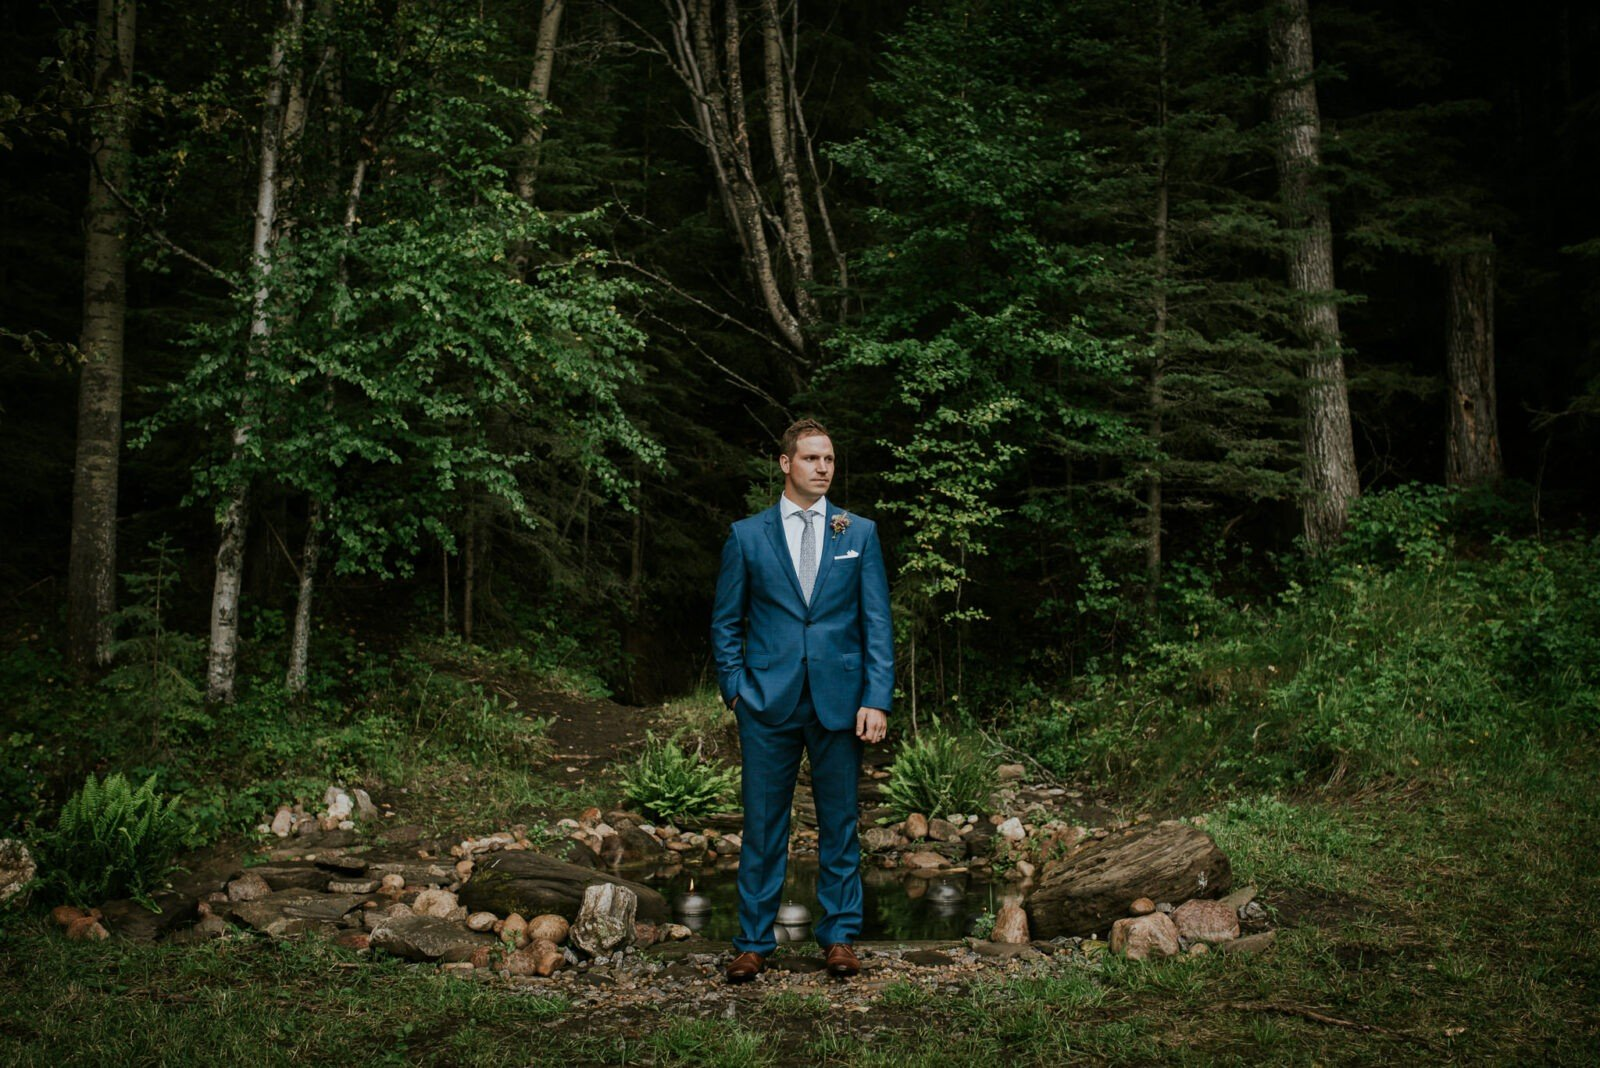 Blue suit groom in the forest.